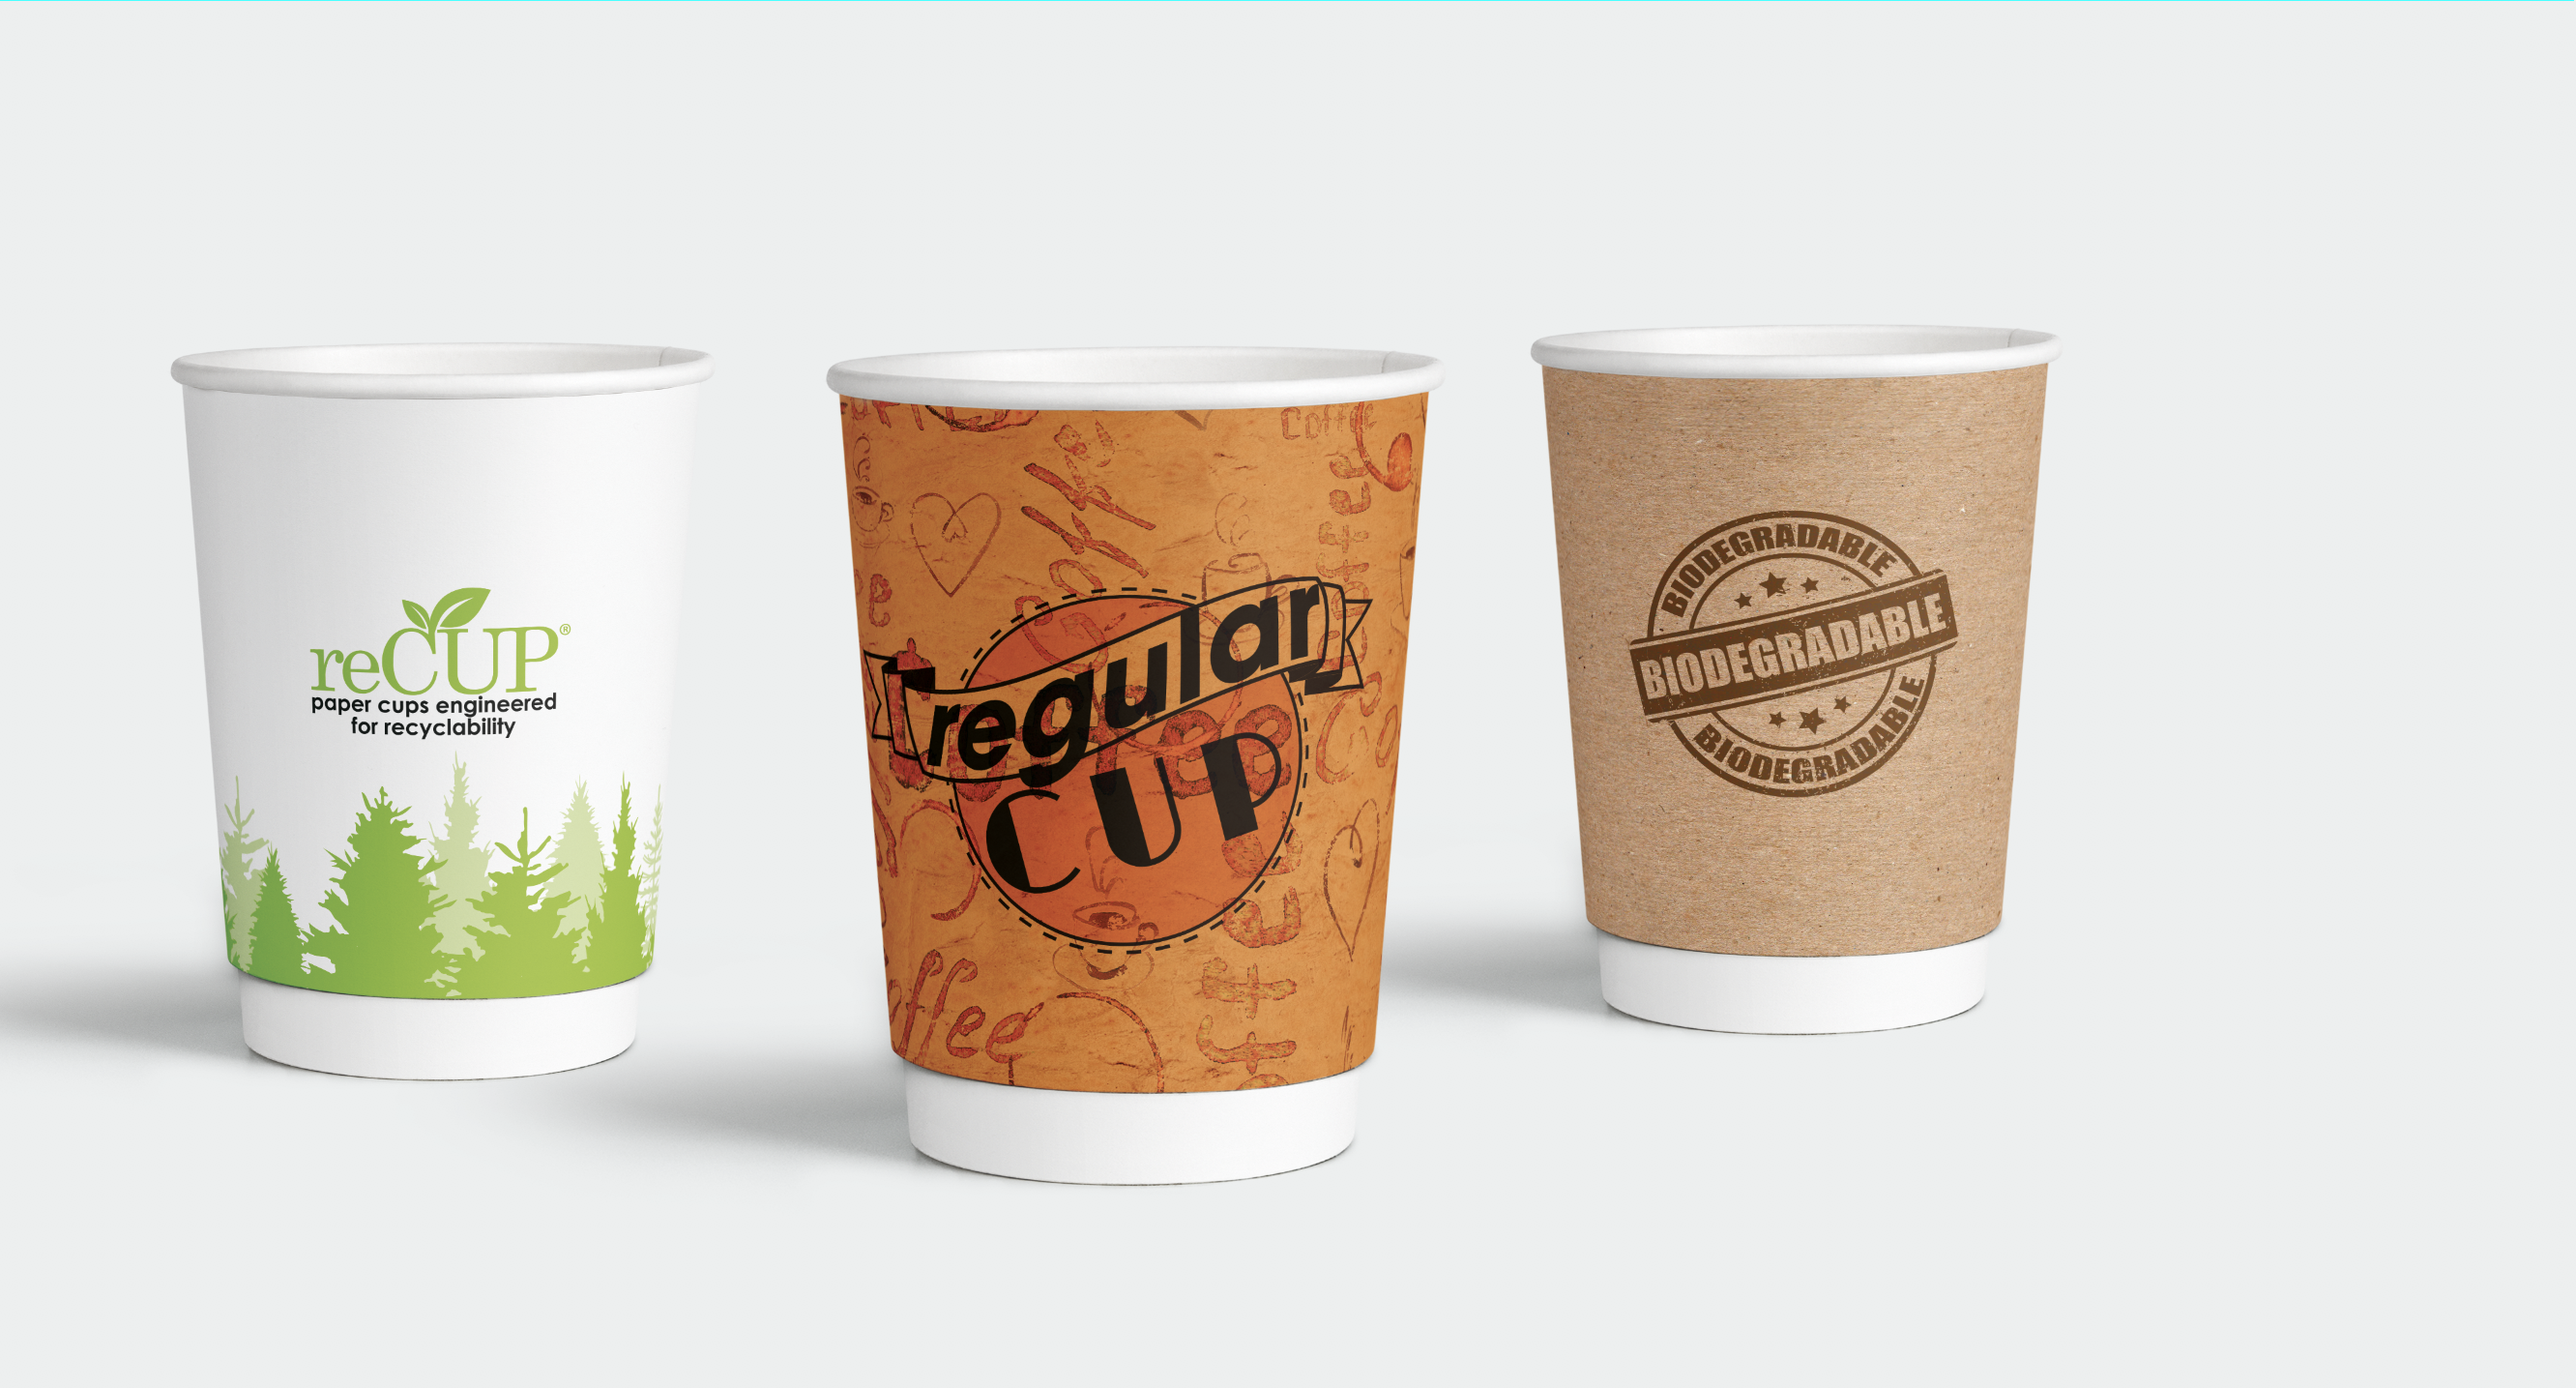 compare sustainable cup types buyers guide